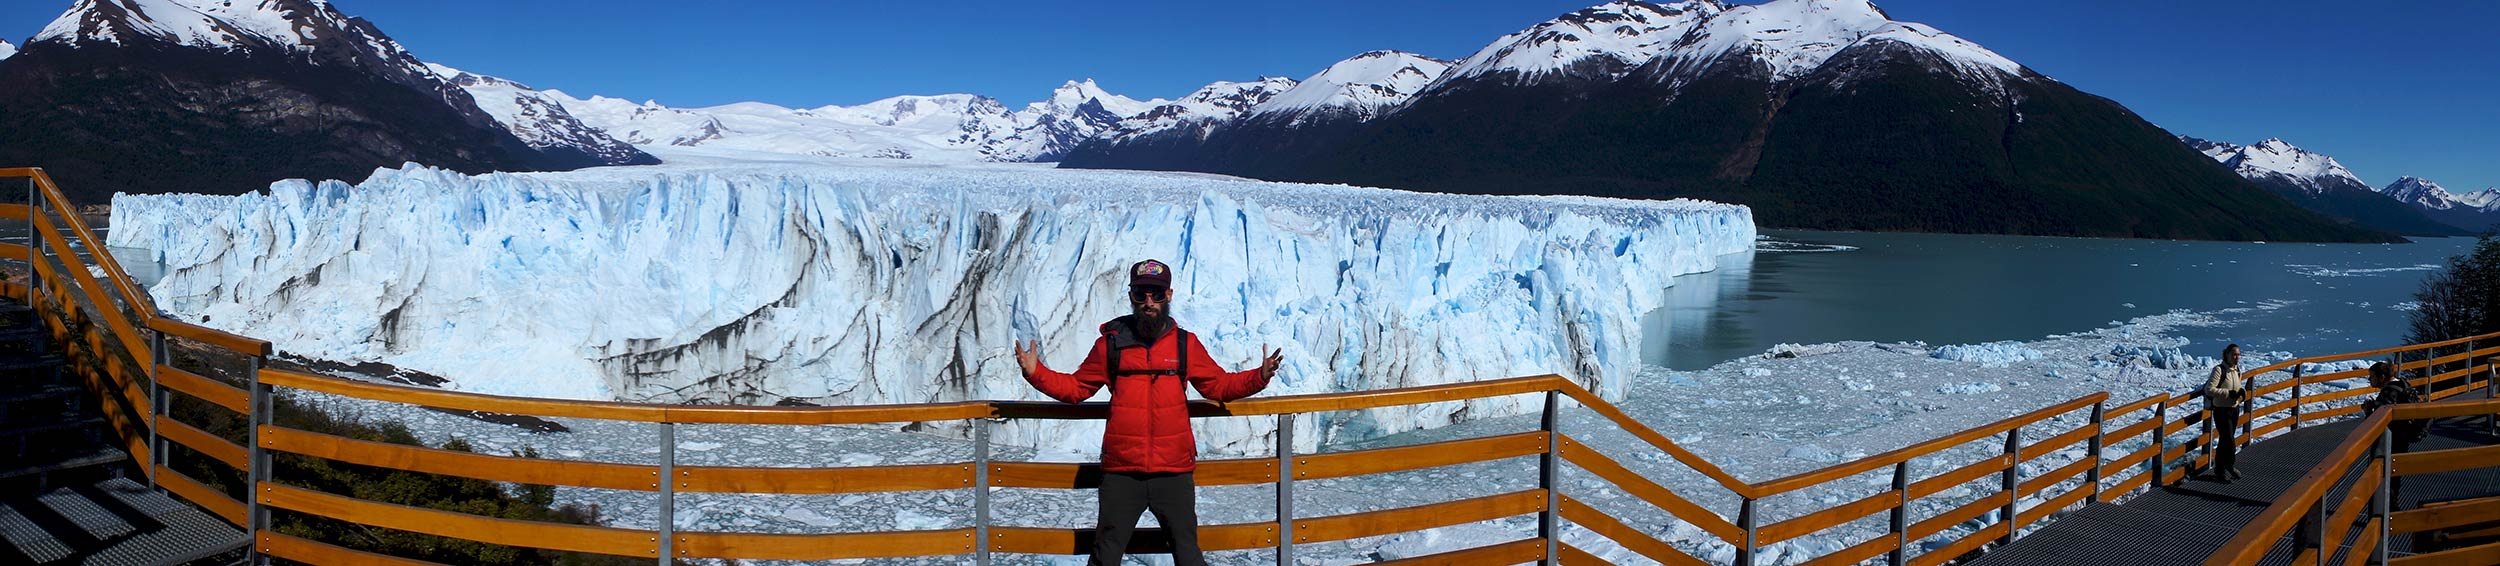 perito_moreno_glacier_viewpoint_boardwalk_jordan.jpg